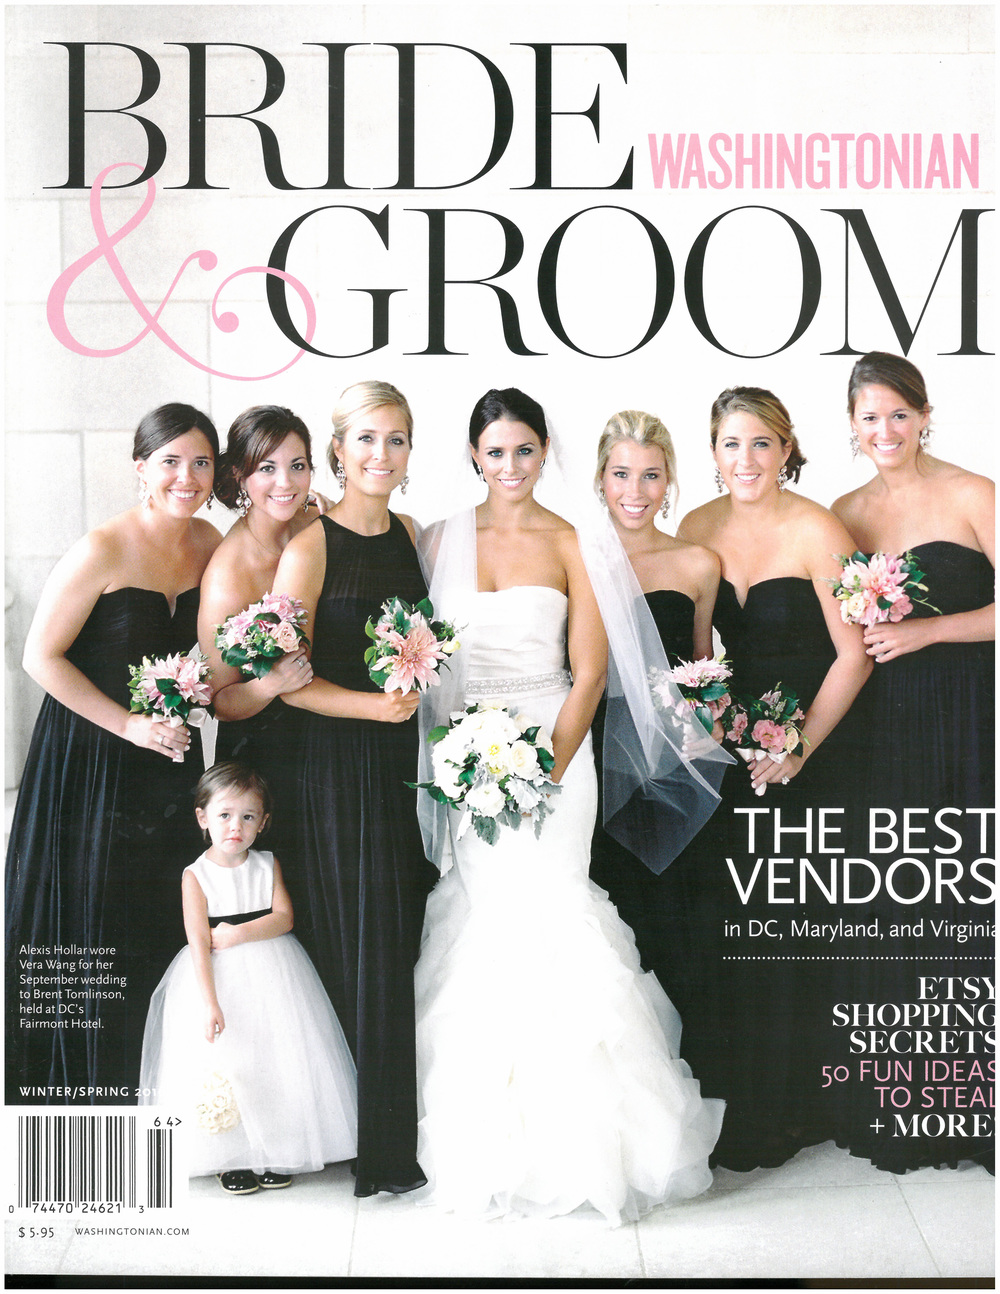 Washingtonian Bride & Groom Cover Winter : Spring 2016.jpg